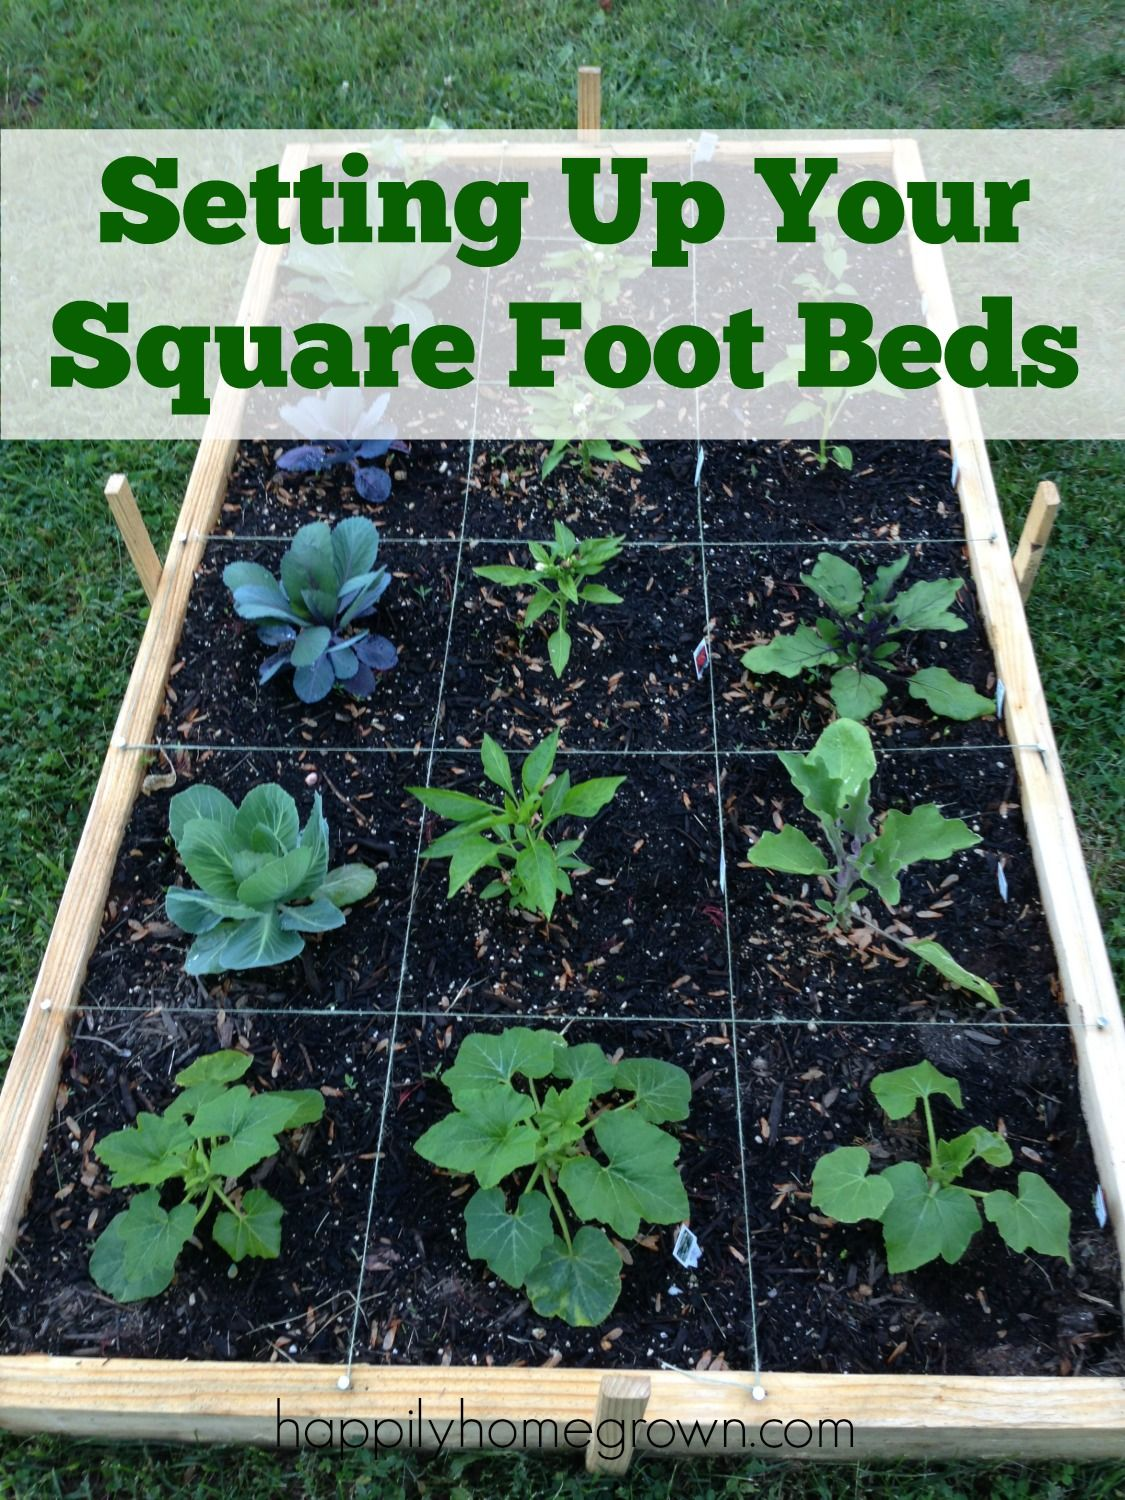 Square foot garden map free printable for garden journal - The Whole Idea Behind Square Foot Gardening Sfg Is To Grow More In Less